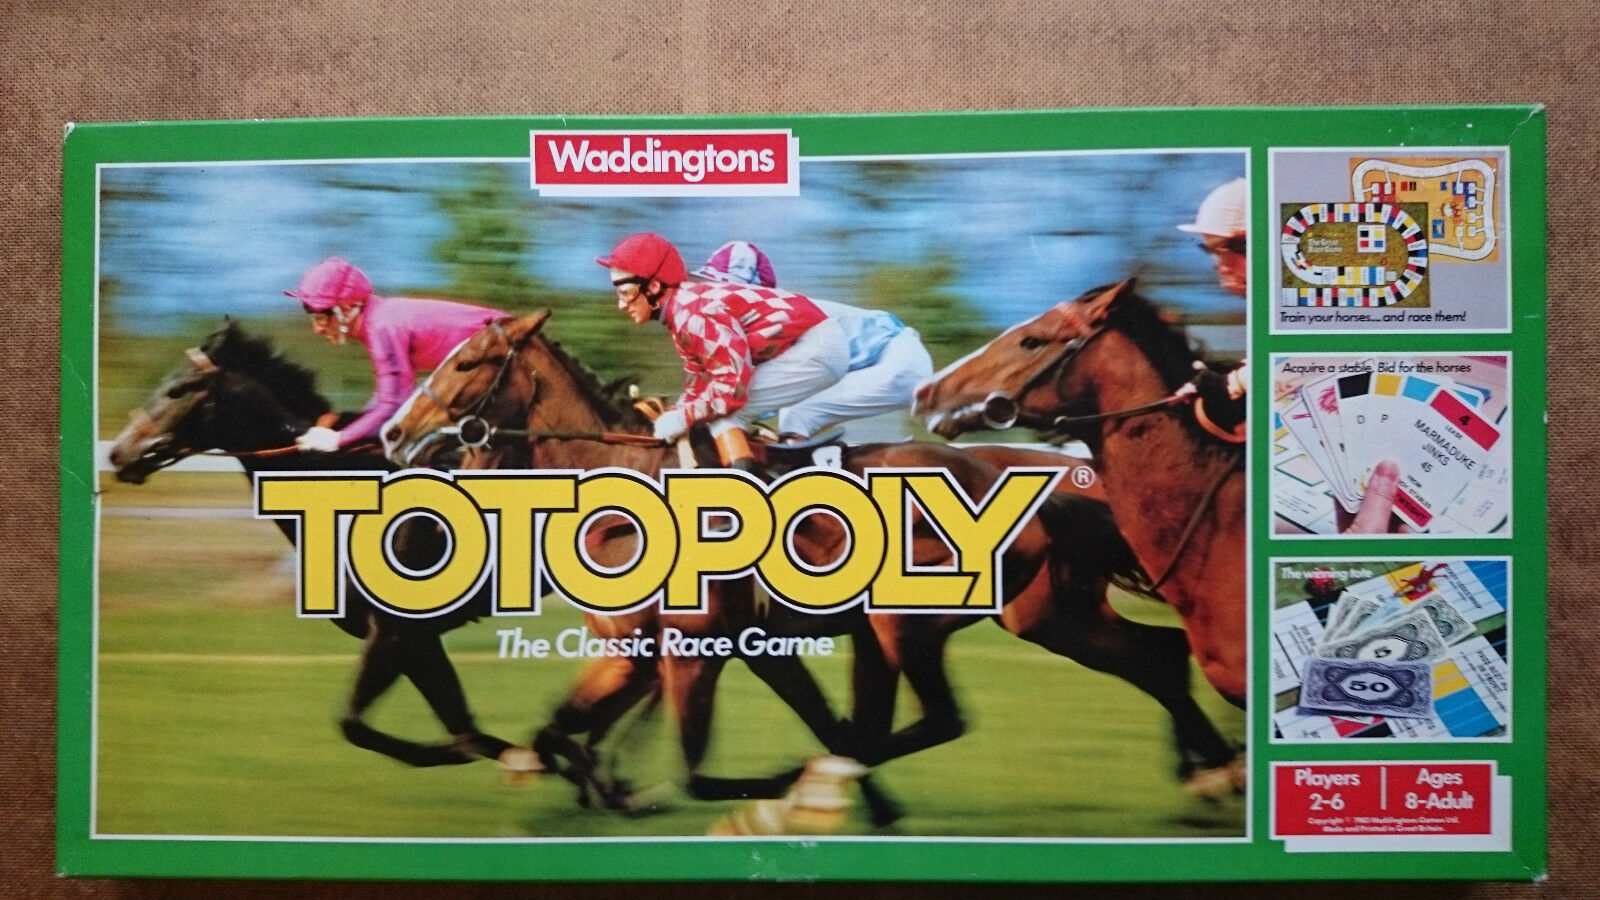 Totopoly Totopoly Totopoly  By Waddingtons 1978 ab286c